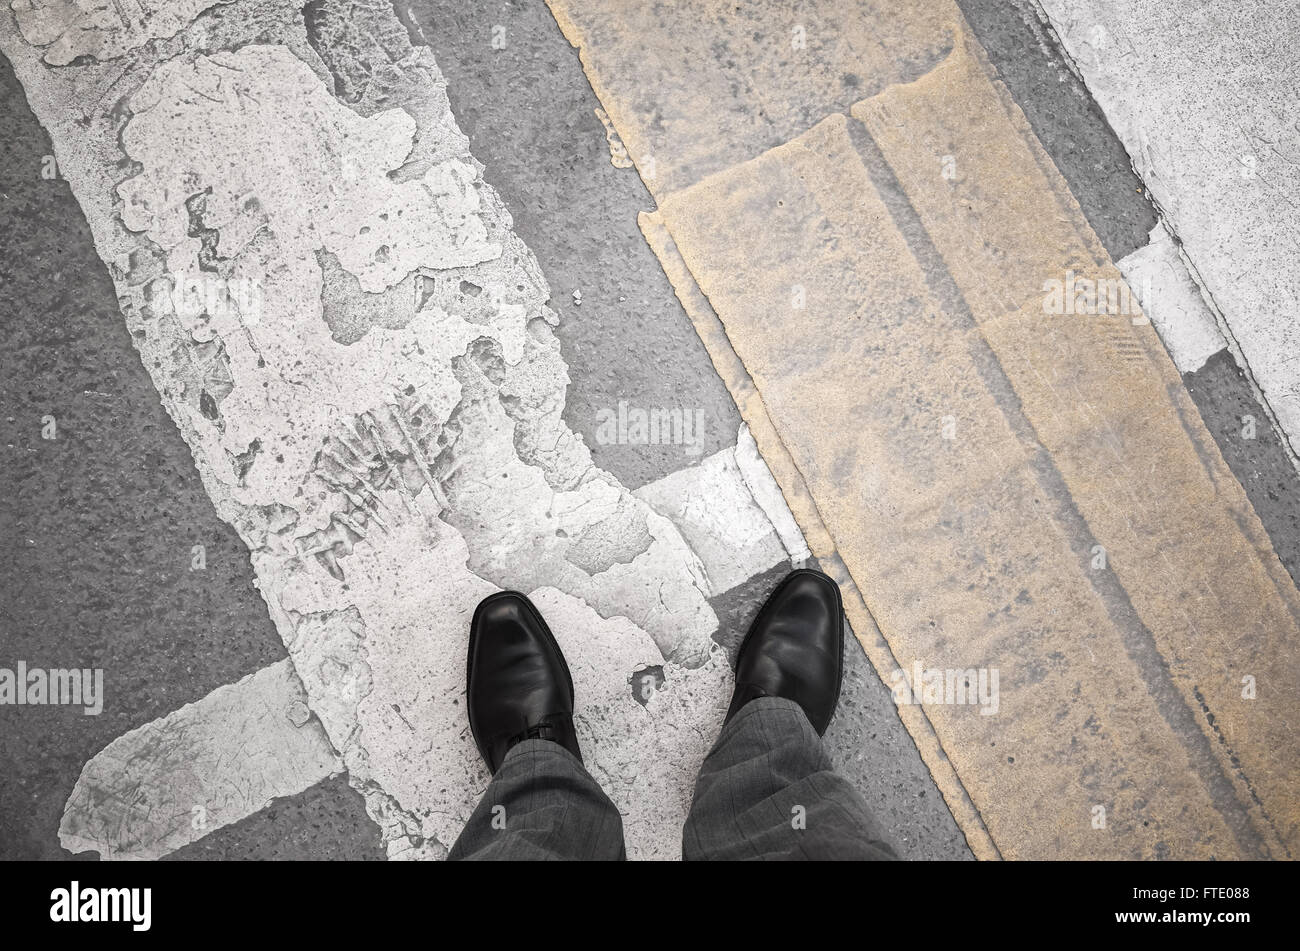 Urbanite man in black new shining leather shoes standing on the dirty pedestrian crossing road marking - Stock Image